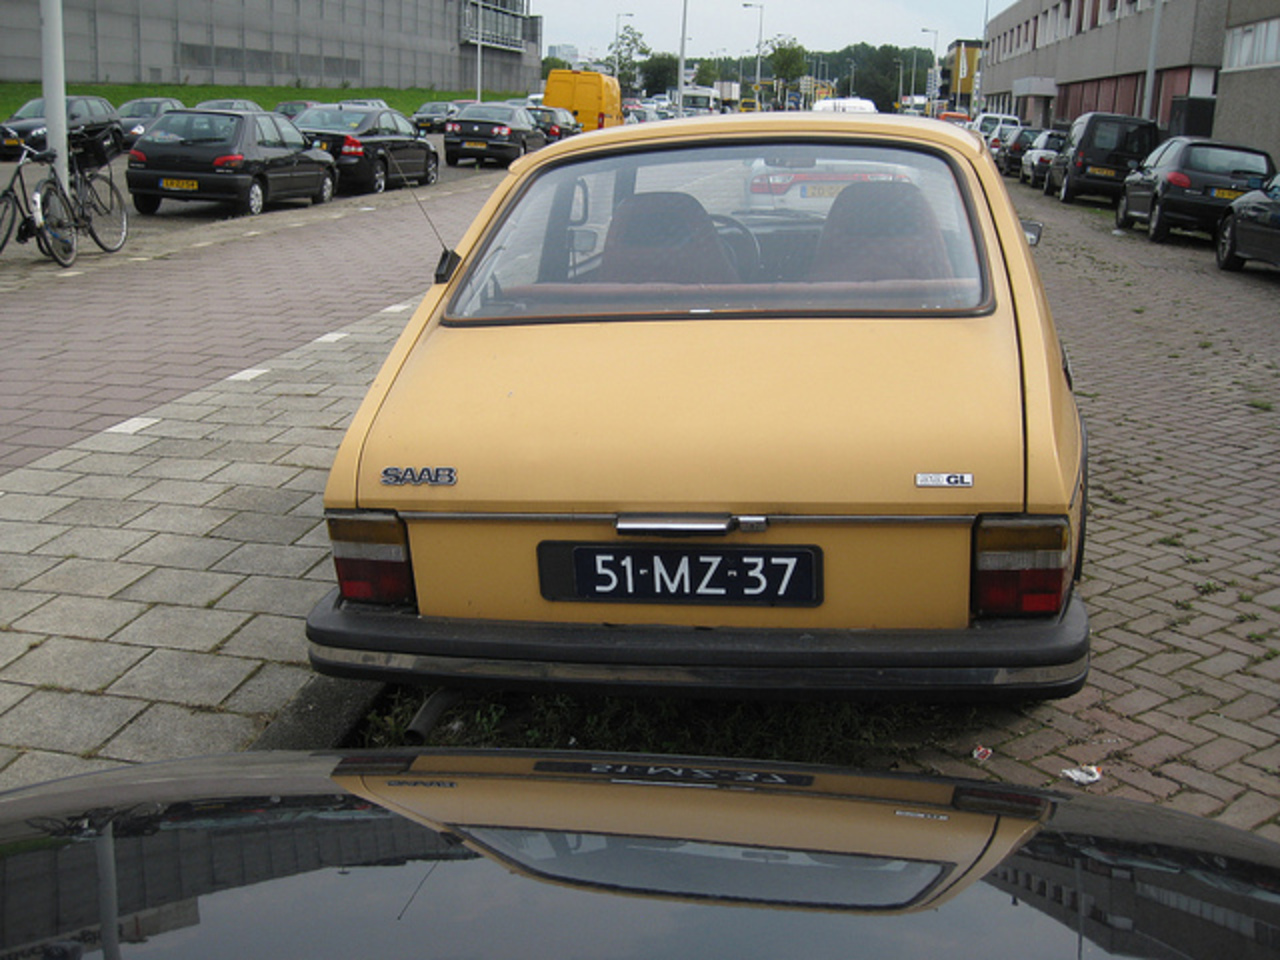 51-MZ-37 SAAB 99 GL combi coupé, 23-8-1976 | Flickr - Photo Sharing!